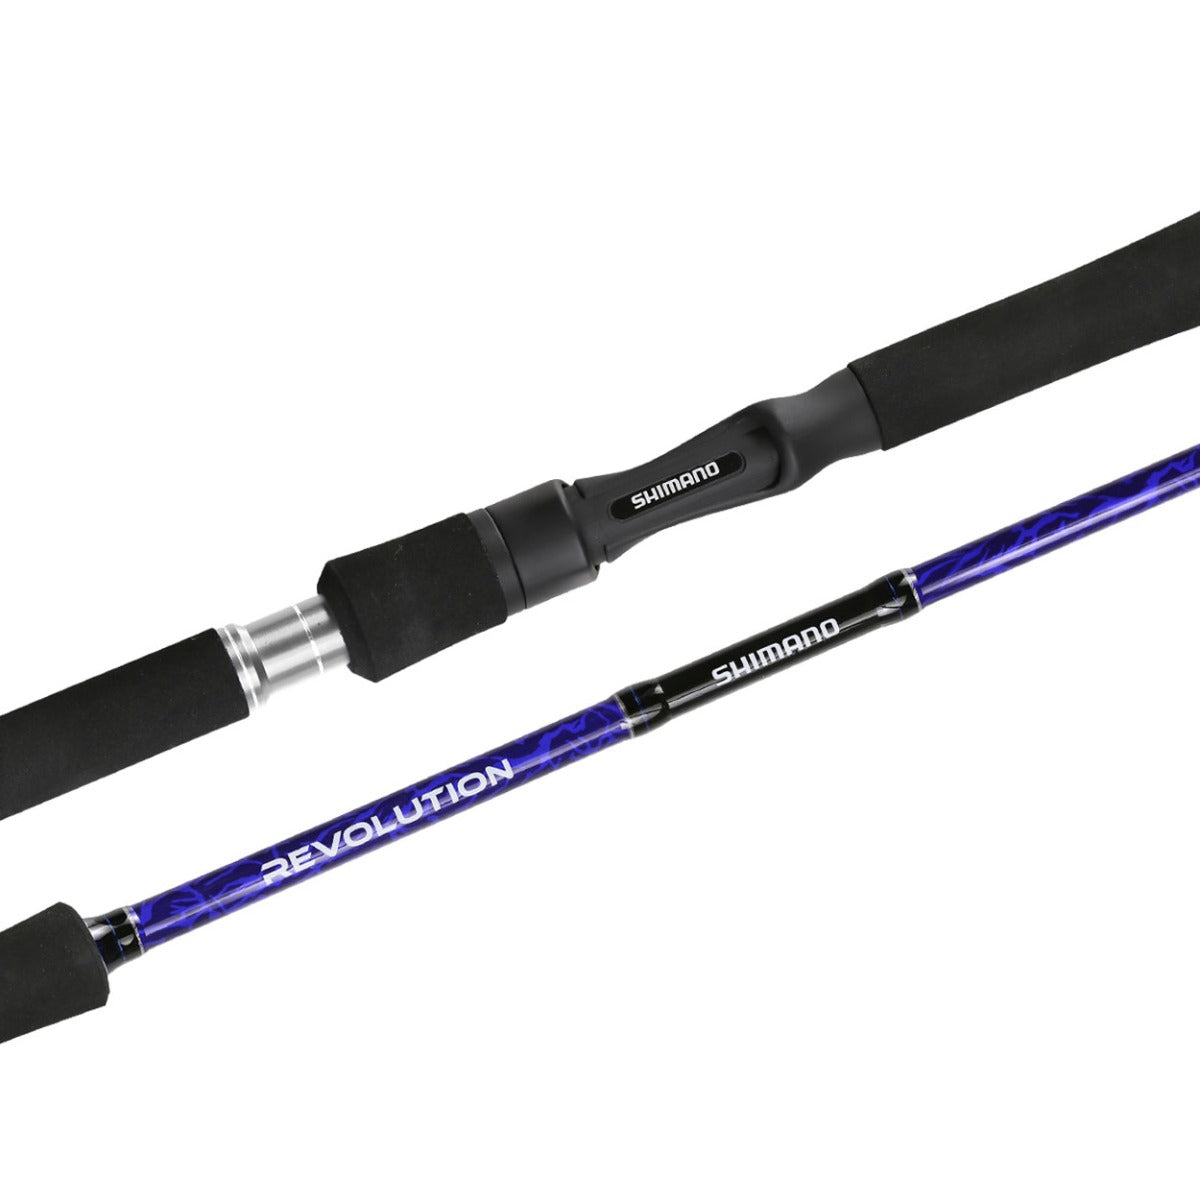 Shimano Revolution Travel Rod